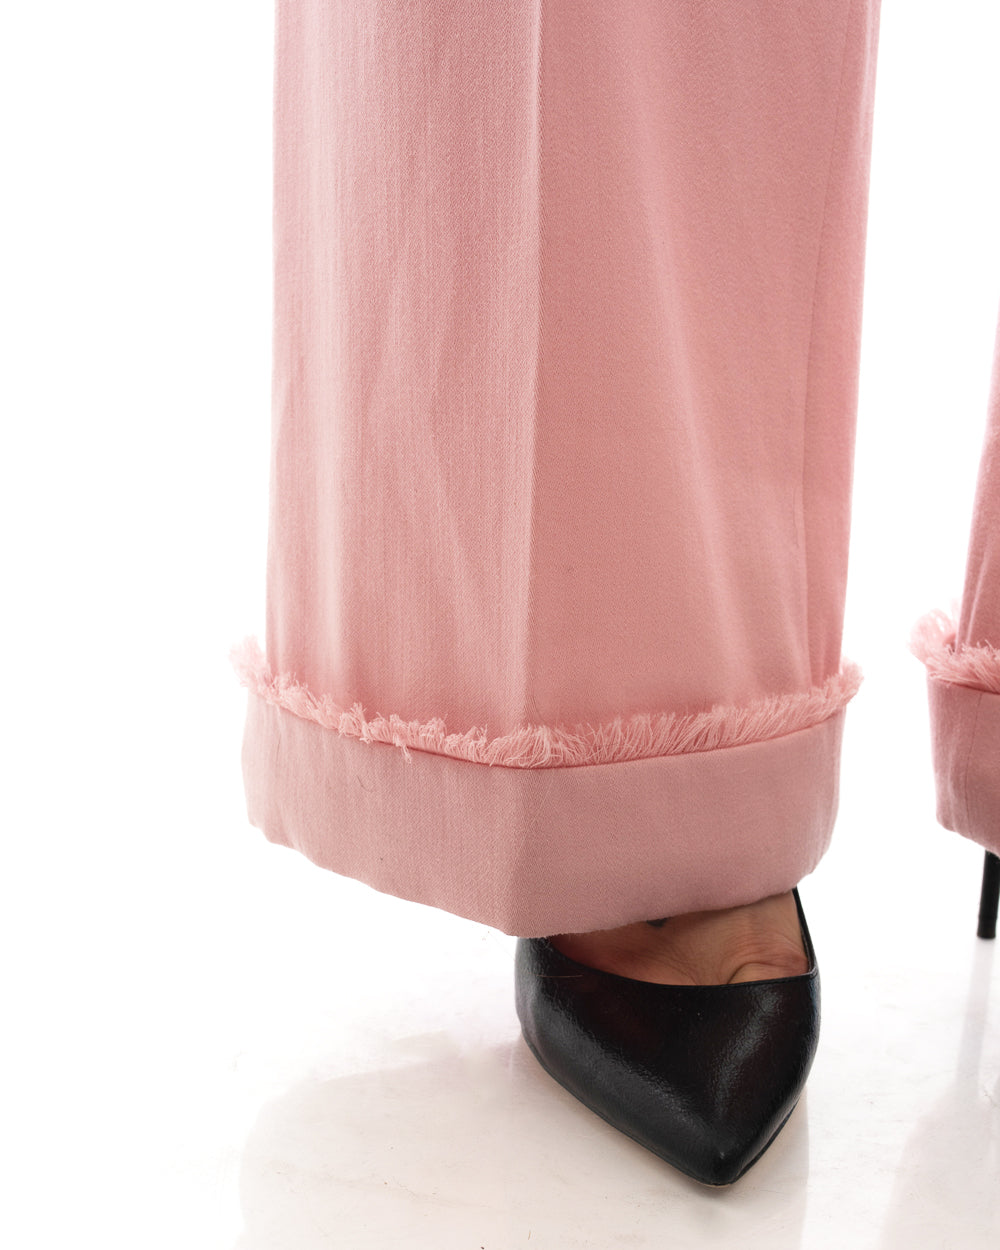 Chanel Fall 2009 Pink Wool High Waist Wide Leg Trouser Pants - 2